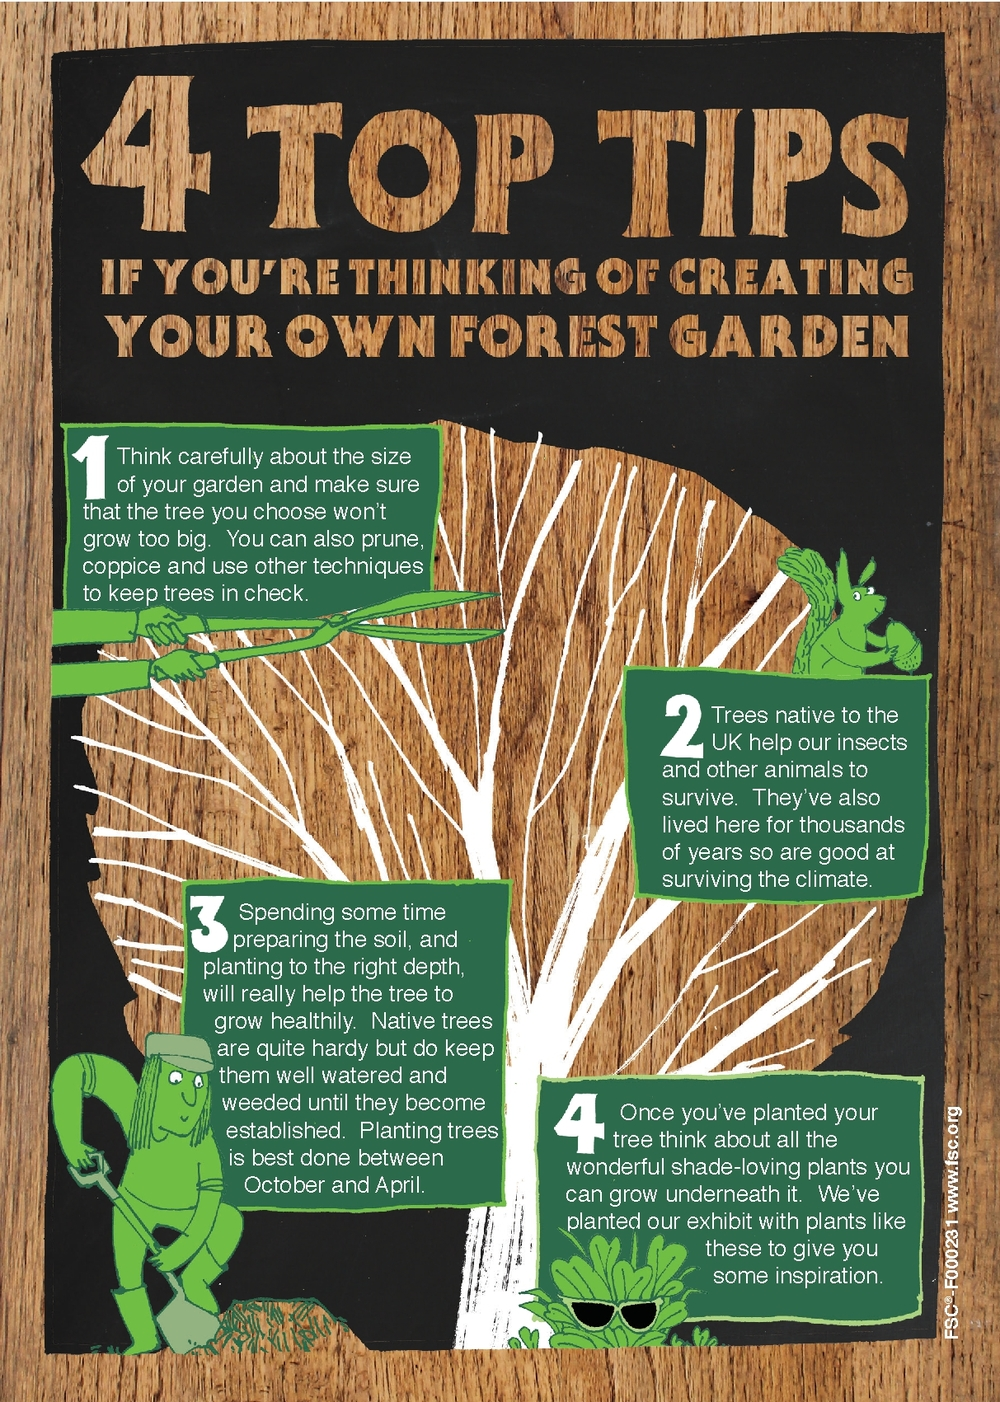 The Forest in your garden - kirstidavies.com